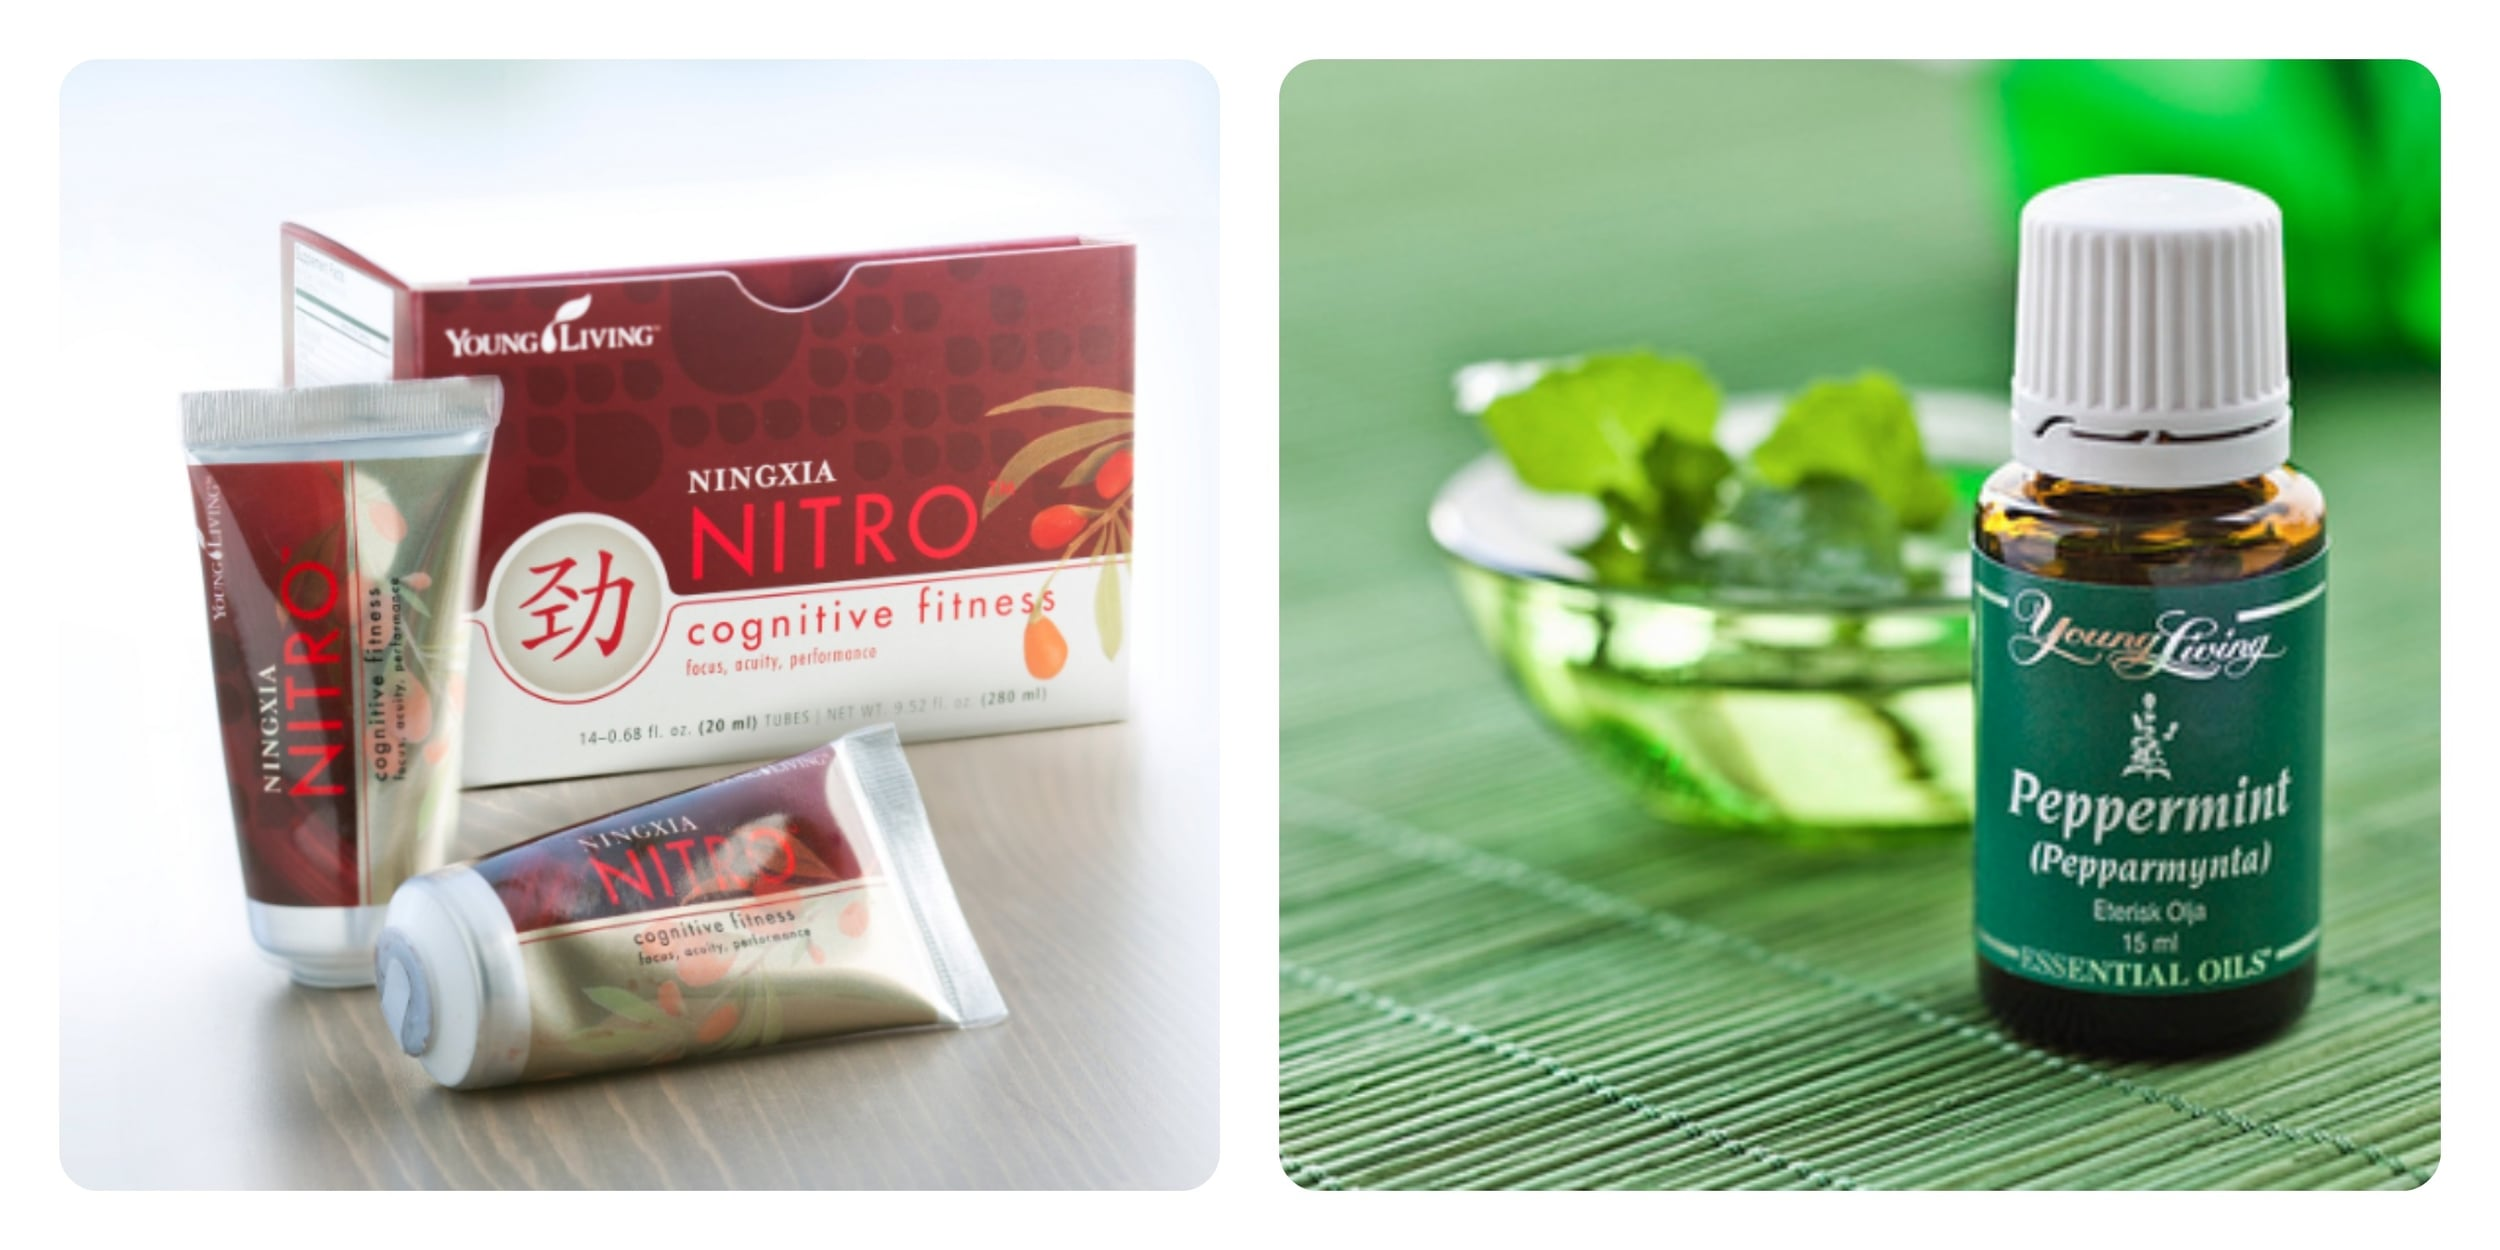 NingXia Nitro                                                          essential oil Peppermint